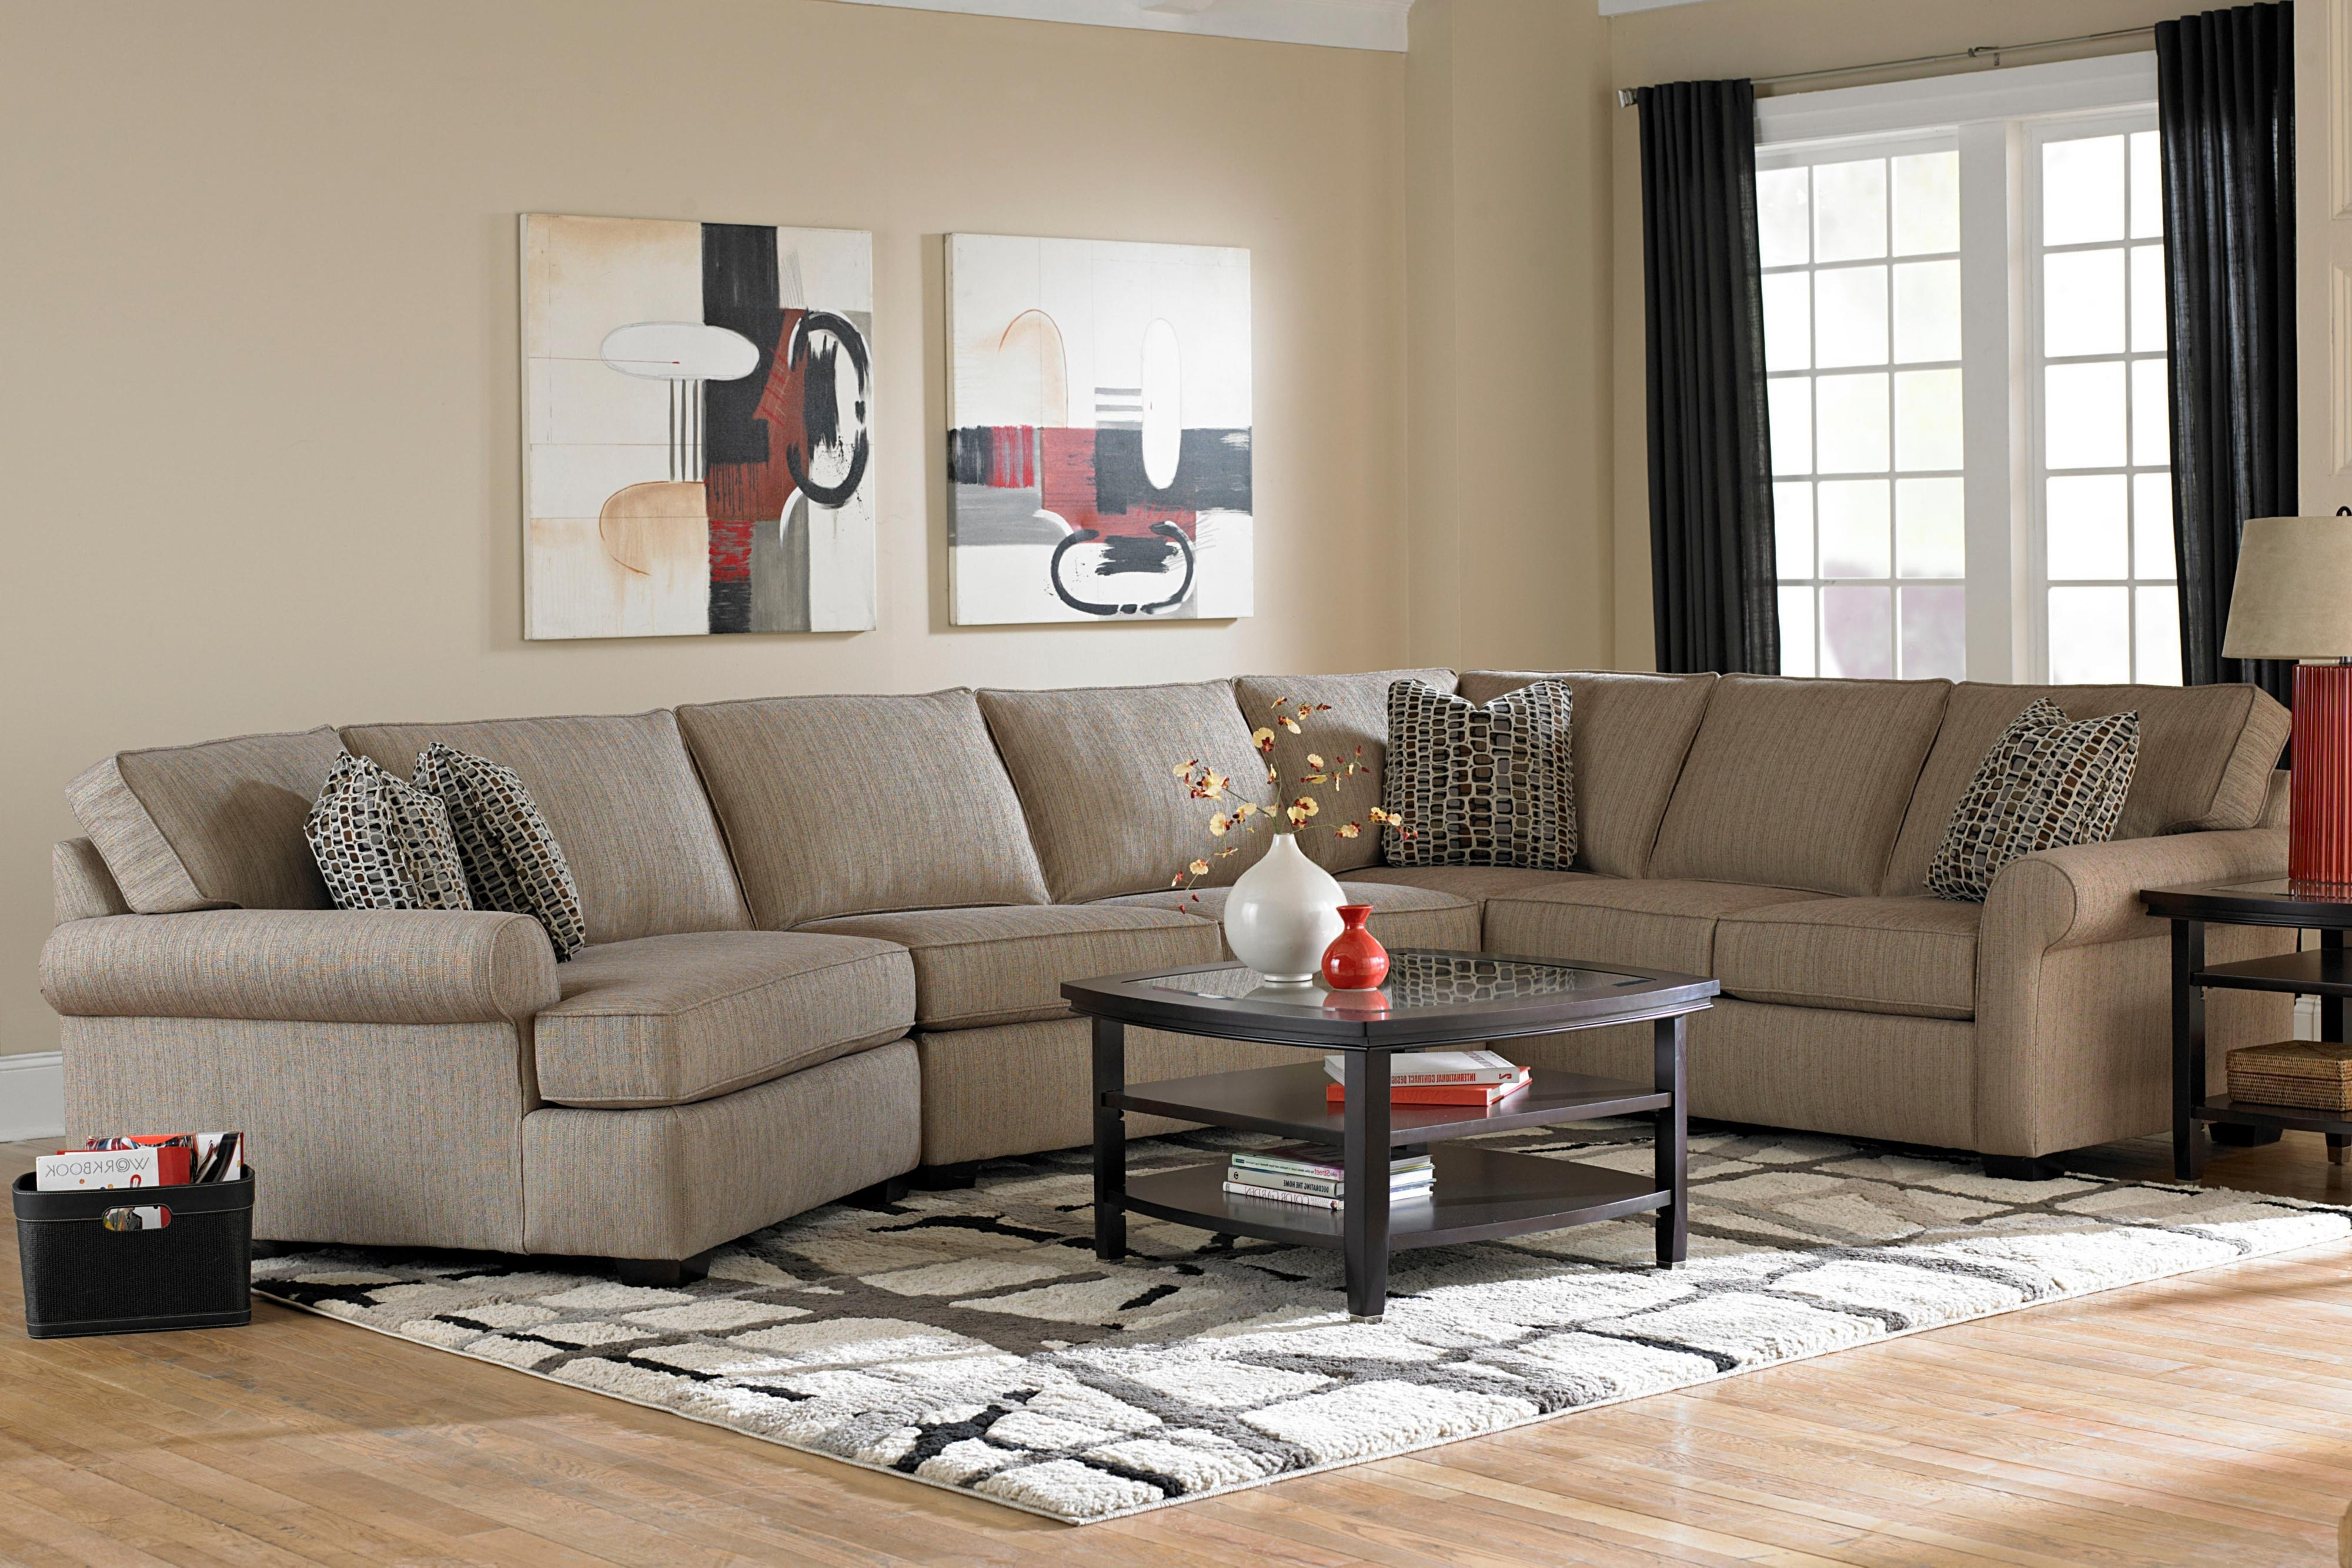 Well Liked Broyhill Furniture Ethan Transitional Sectional Sofa With Right With Virginia Sectional Sofas (View 12 of 20)